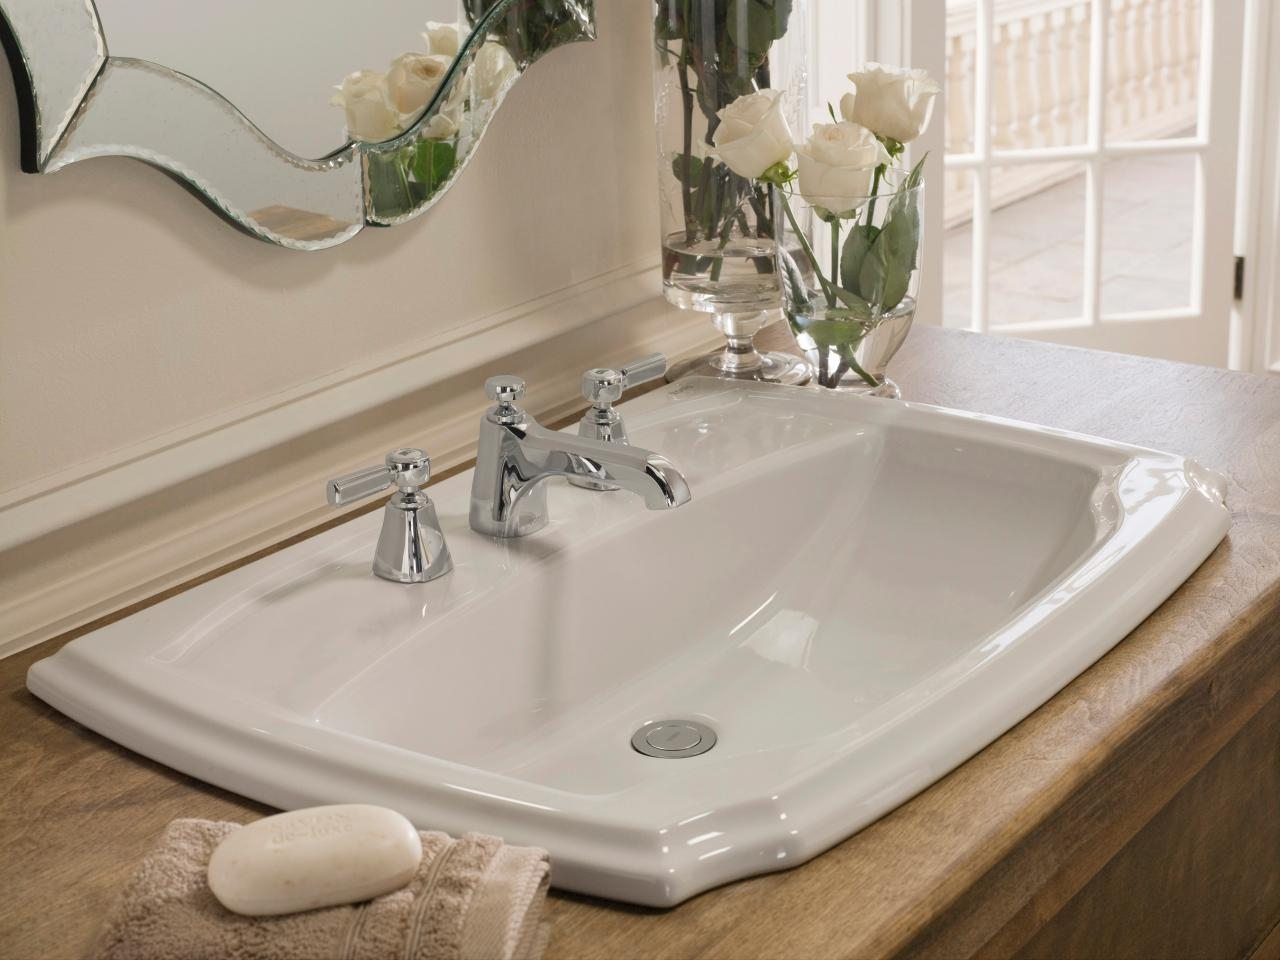 Ideas, best bathroom faucets ultimate guide reviews 2017 intended for sizing 1280 x 960 jpeg.